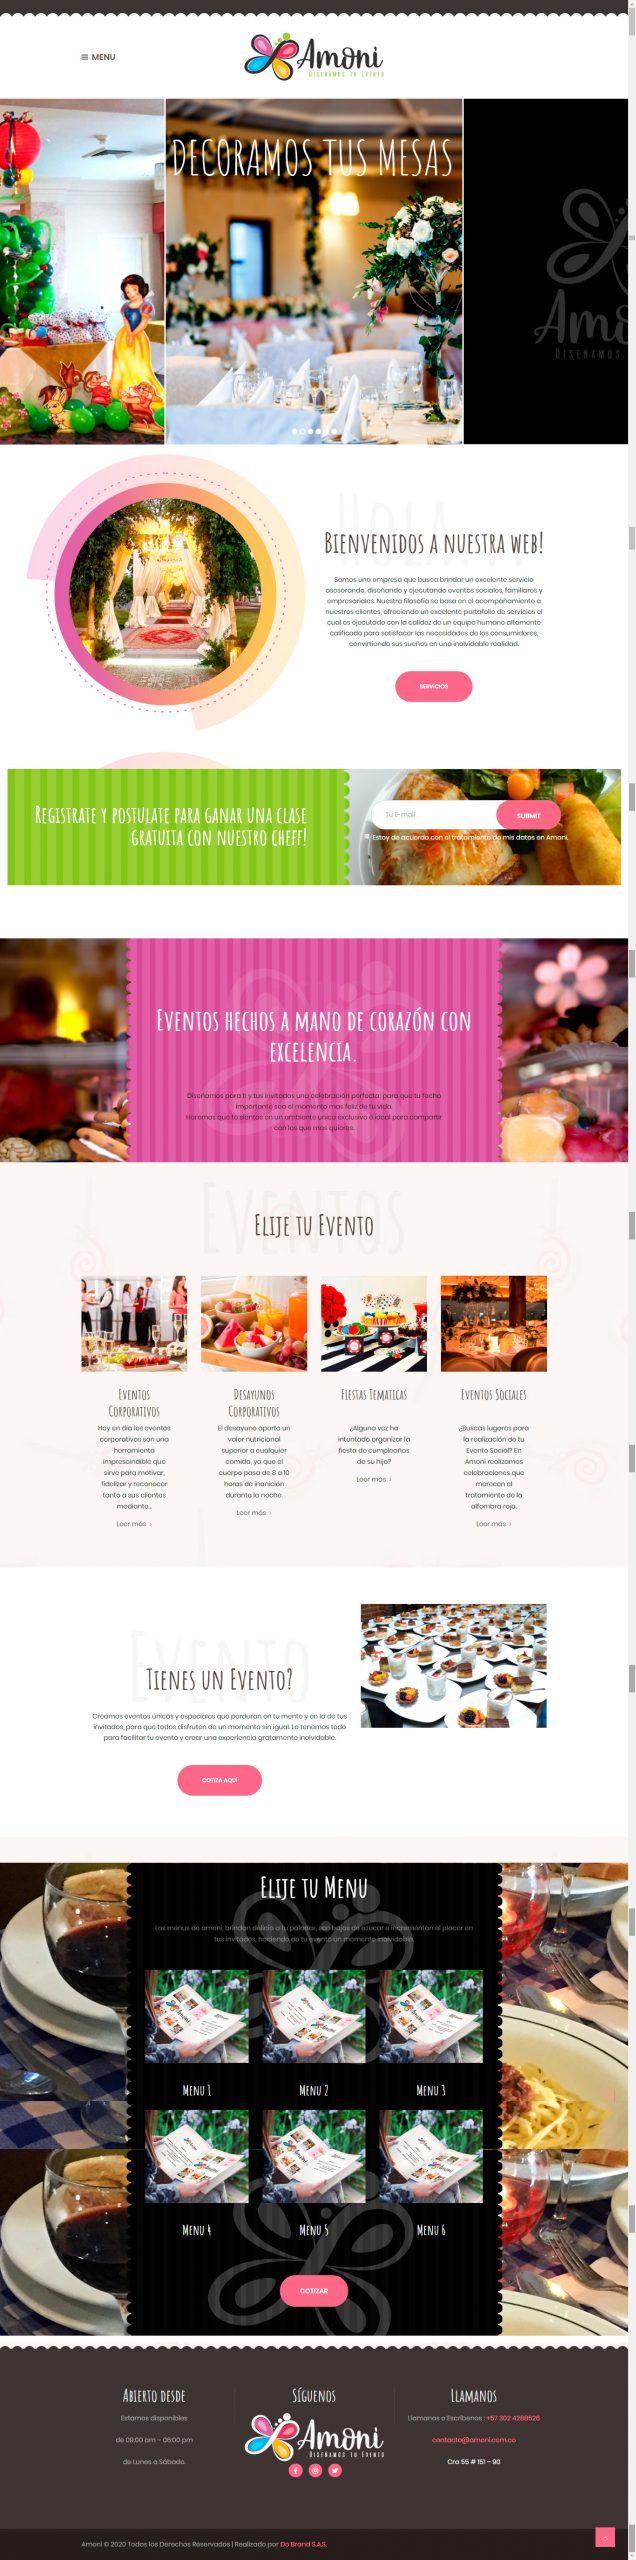 Sitio Web Amoni